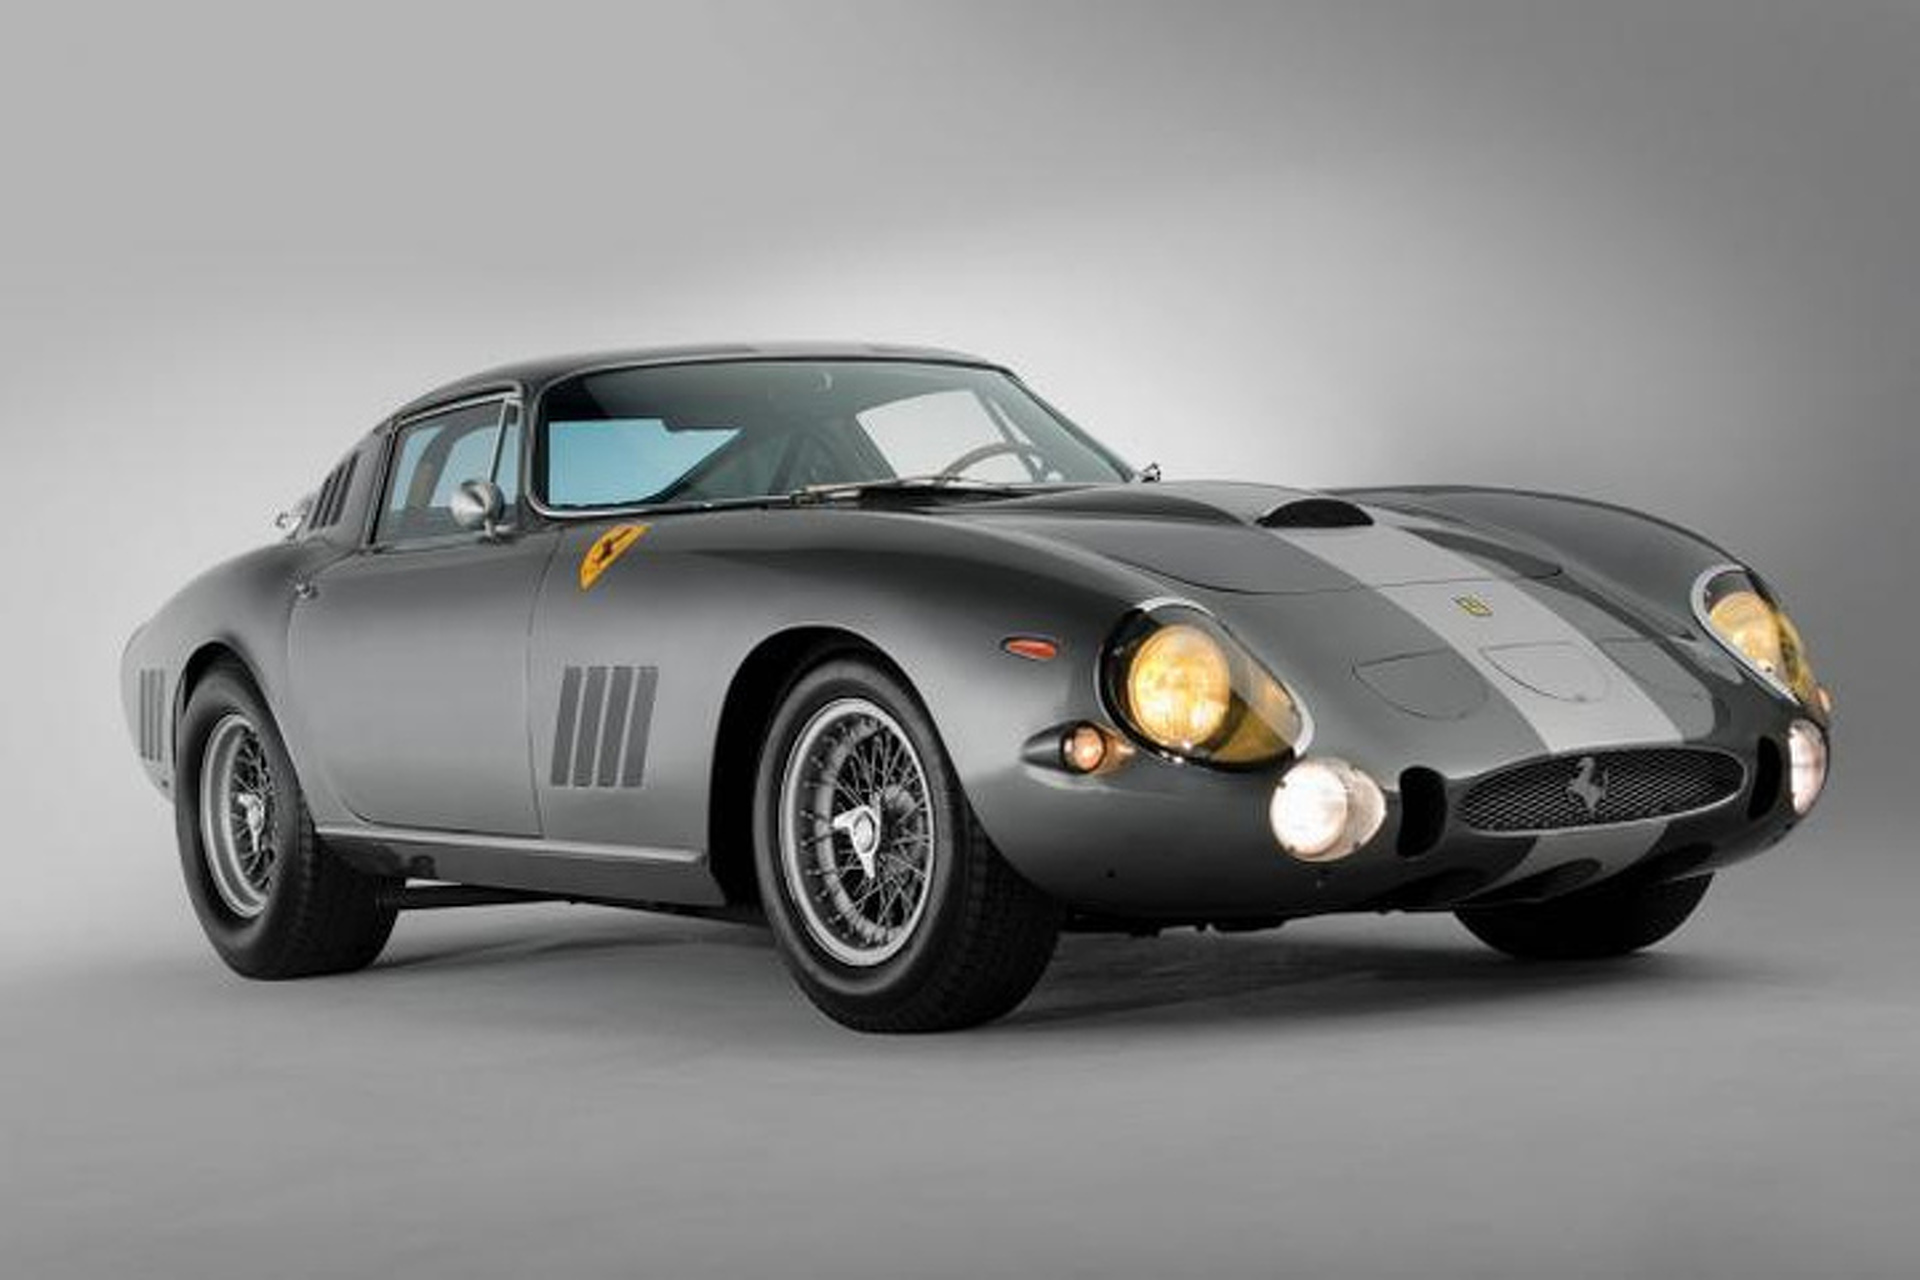 This Car Could Become the World's Most Expensive Ferrari